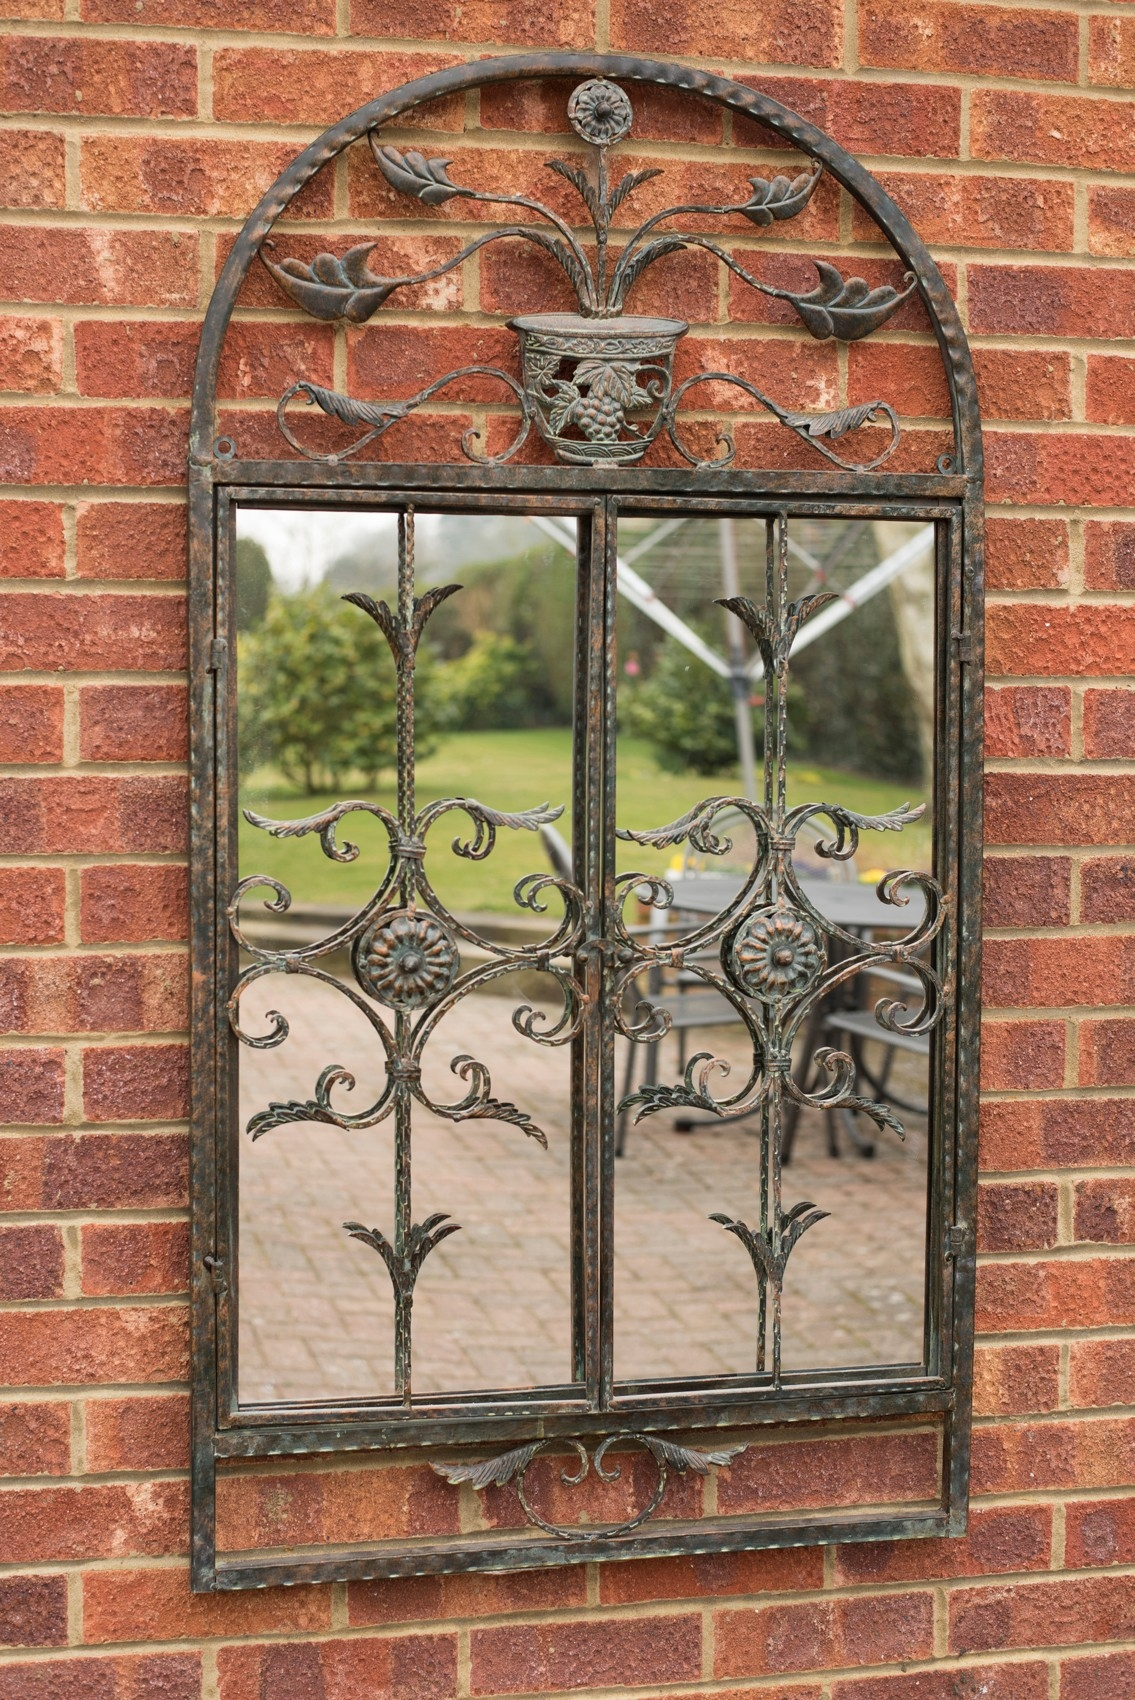 Large Outdoor Garden Mirrors Throughout Garden Wall Mirrors (View 10 of 15)